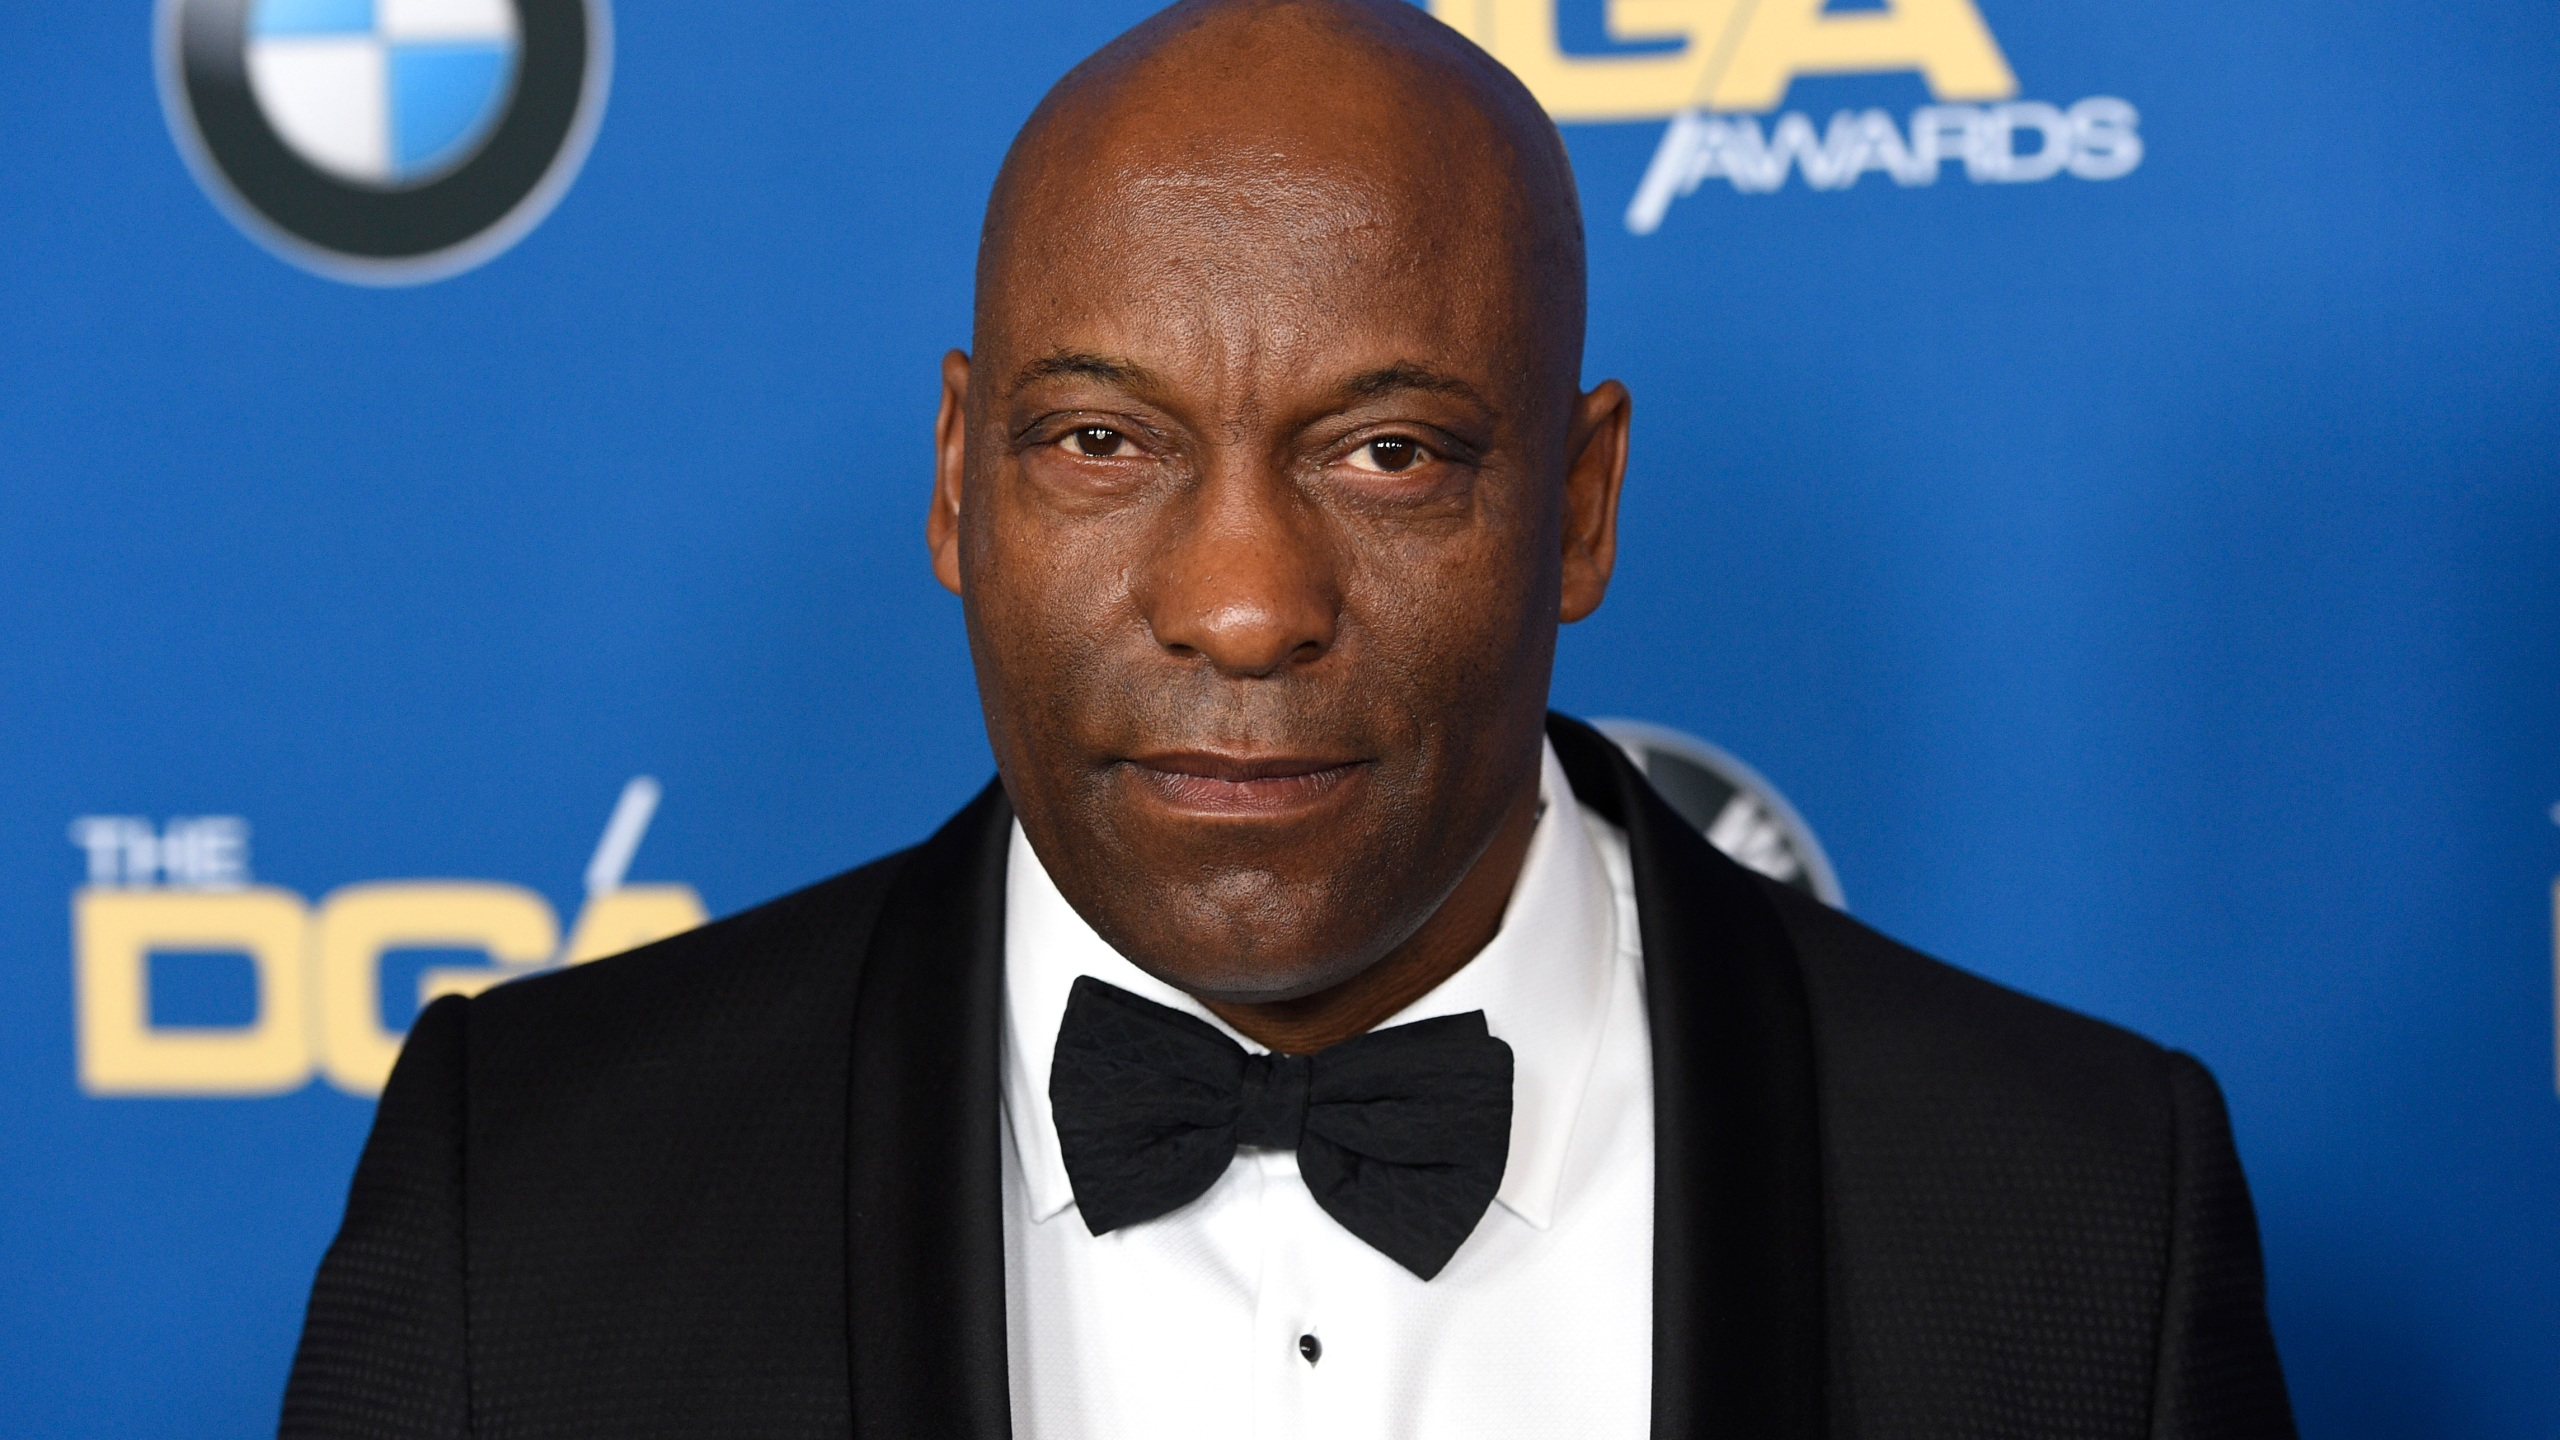 People_John_Singleton_40449-159532.jpg20537005